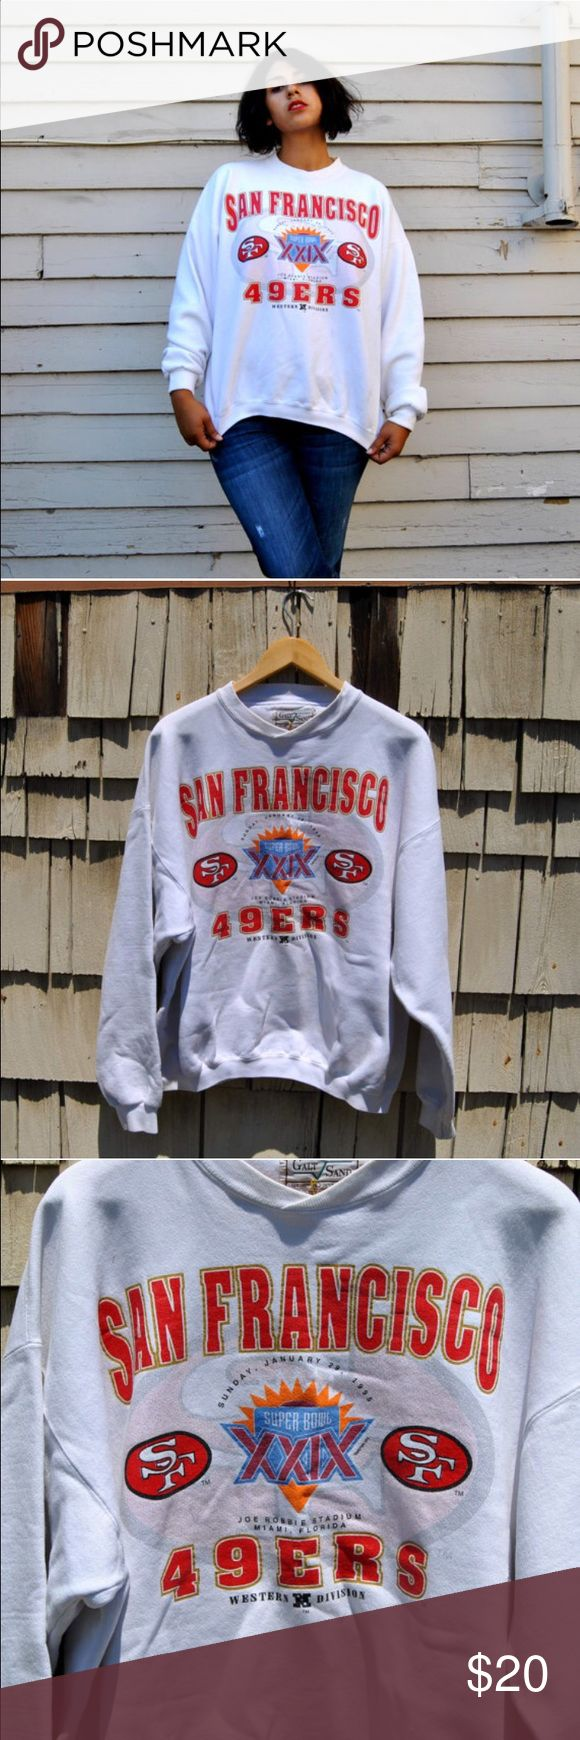 """90s 49ers Sweater GOLD BLOODED. Features Superbowl XXIX motif (29 for those who don't understand Roman numerals) from 1994. Great condition - There is some discoloration near the hem and a little fray on the left front, but otherwise great.  Found in: SF, CA  Brand: Galt Sand  Tag Size: L  Fits like a modern: Up to XXL  Model is 5'8"""" with measurements of 40x31x43, wears a modern size Large.  Measurements taken flat: Bust - 27in Length - 27in Sleeve - 22.5in Hips -    Material: 80 Cotton 20…"""